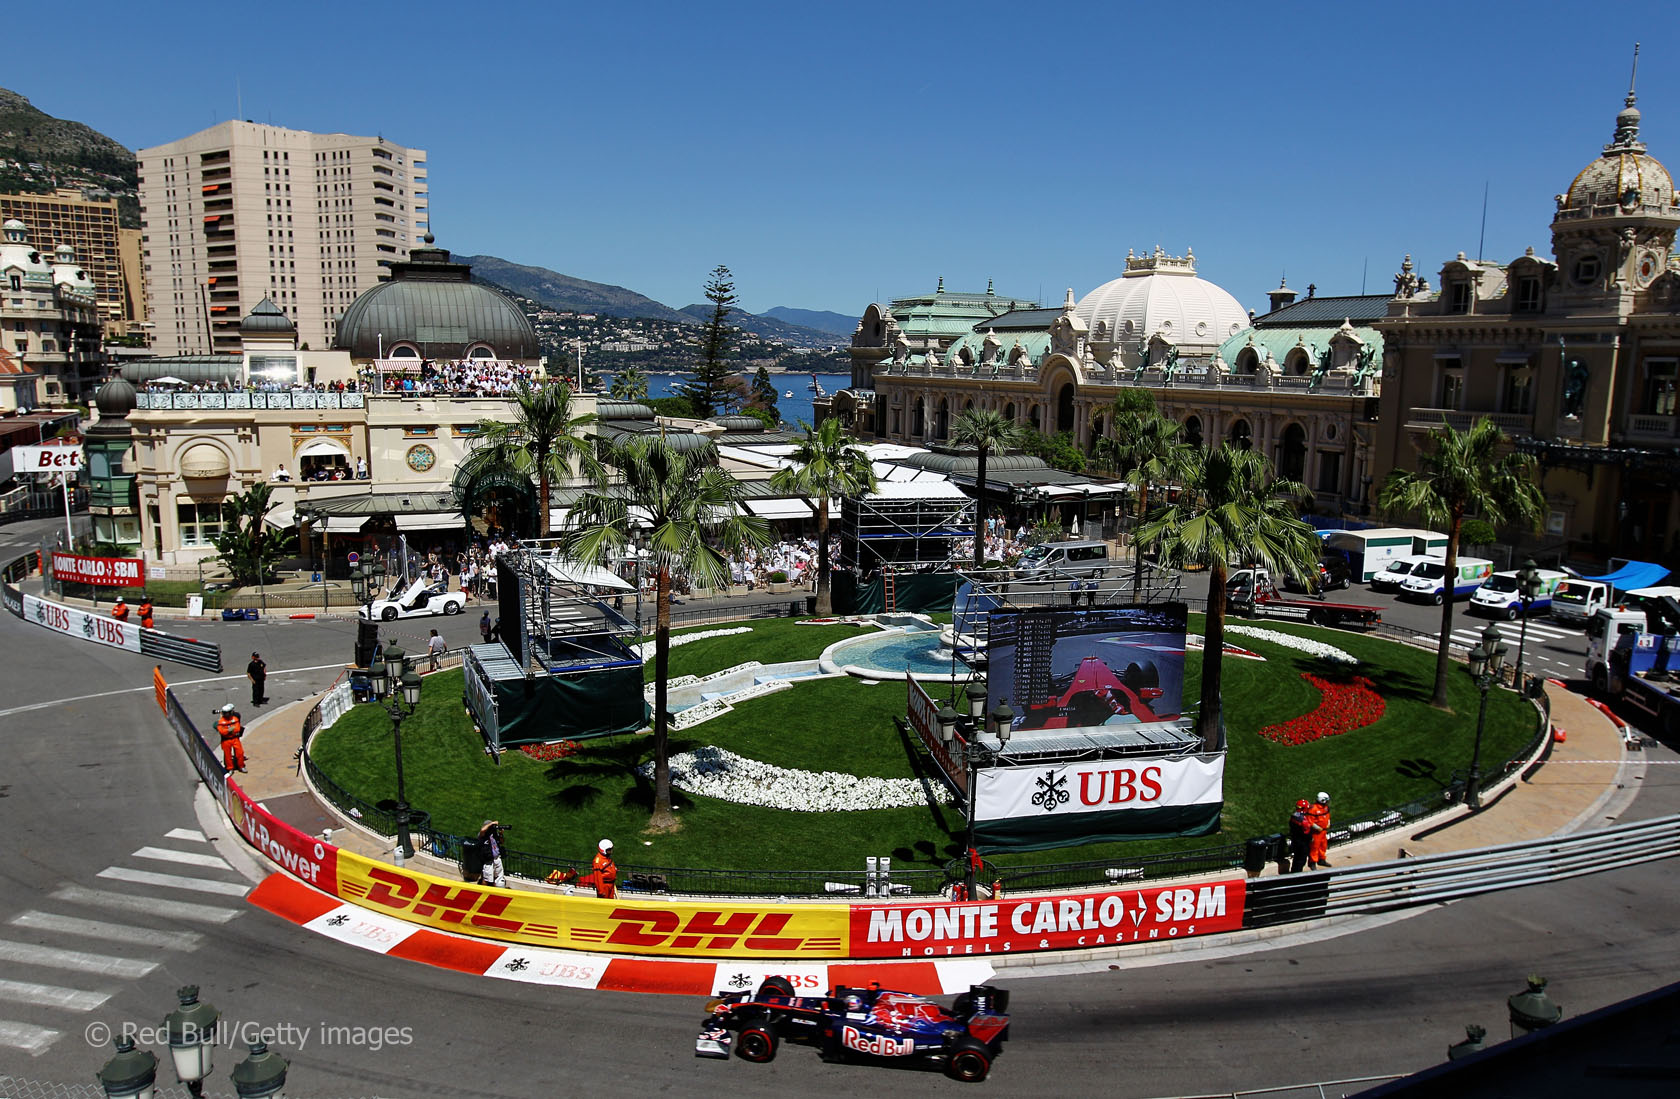 Monaco F1 Grand Prix - Qualifying